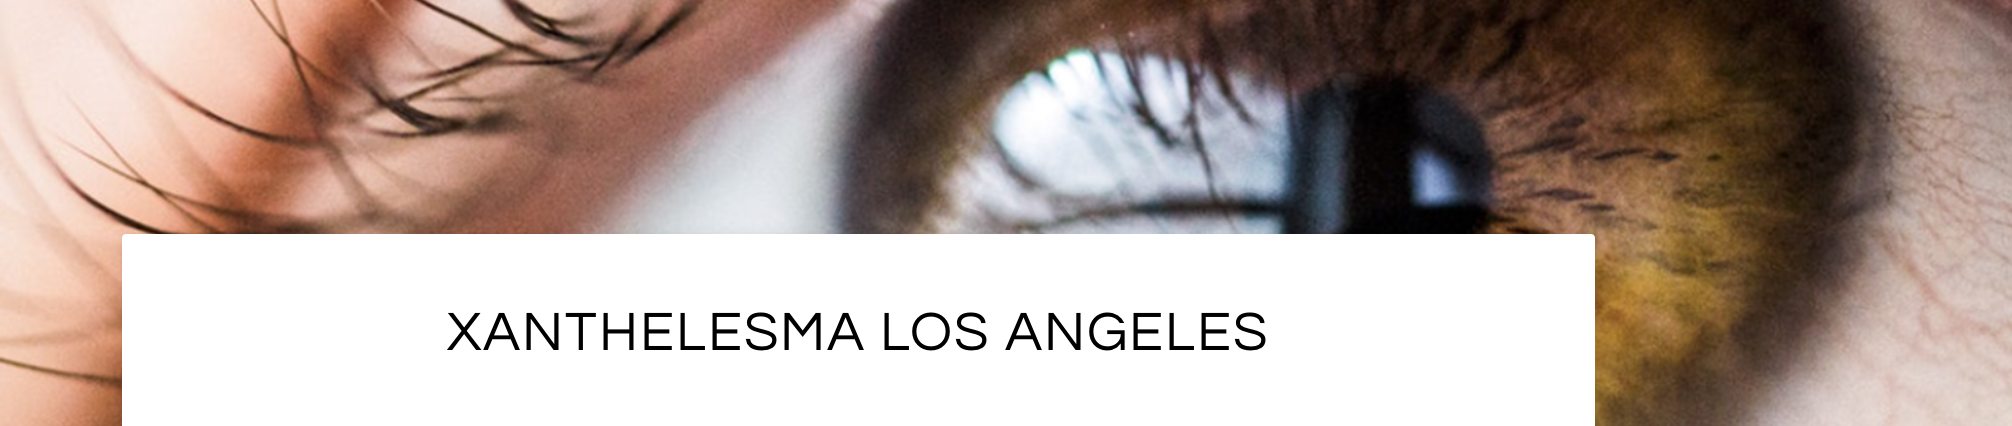 Xanthelesma Removal in Santa Monica and Beverly Hills